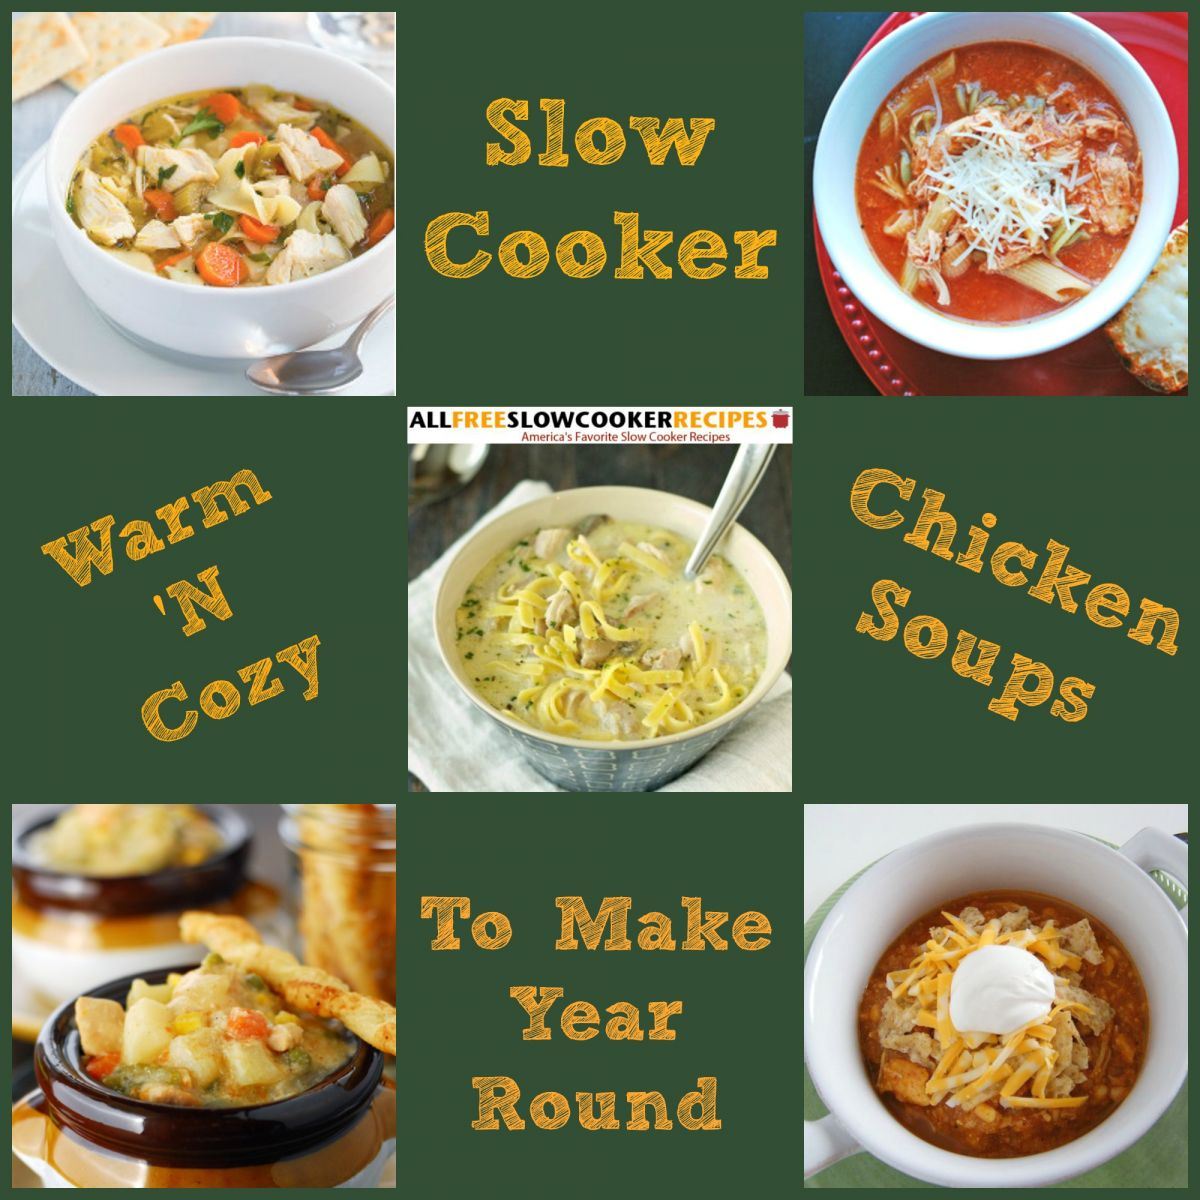 5 Homemade Chicken Noodle Soup Recipes & Other Easy Slow Cooker Chicken Soups